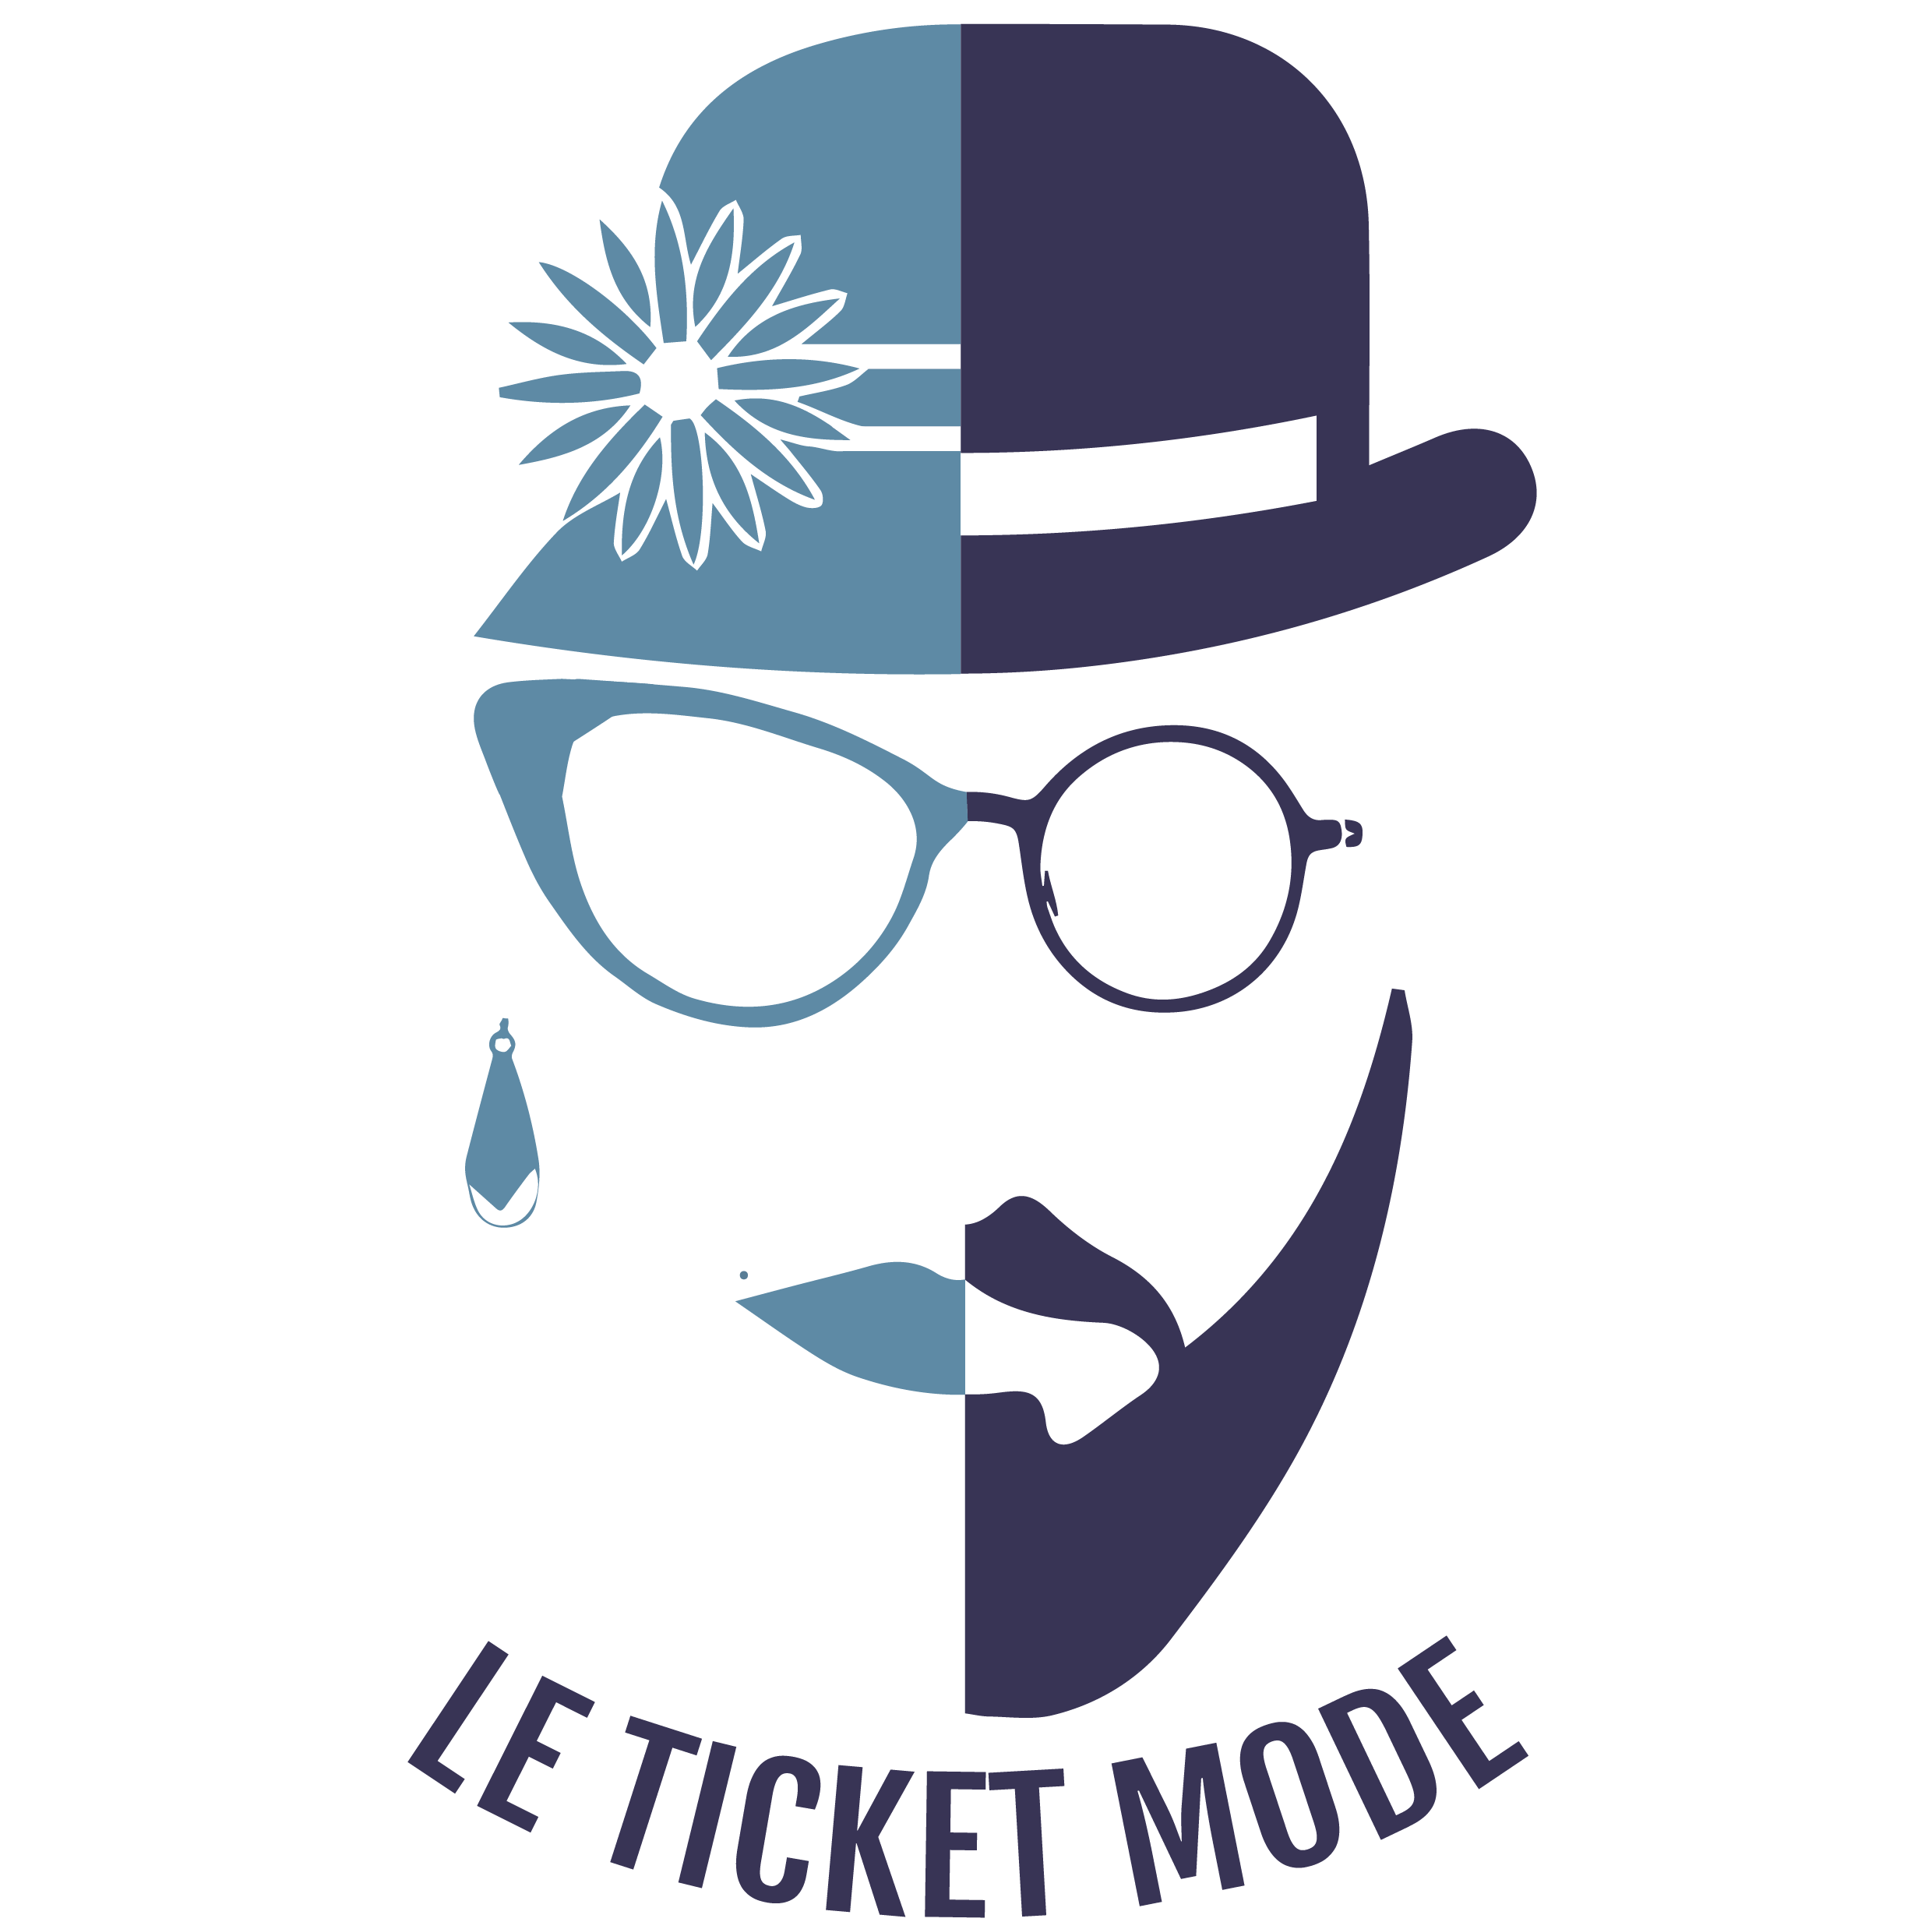 Le Ticket Mode logo